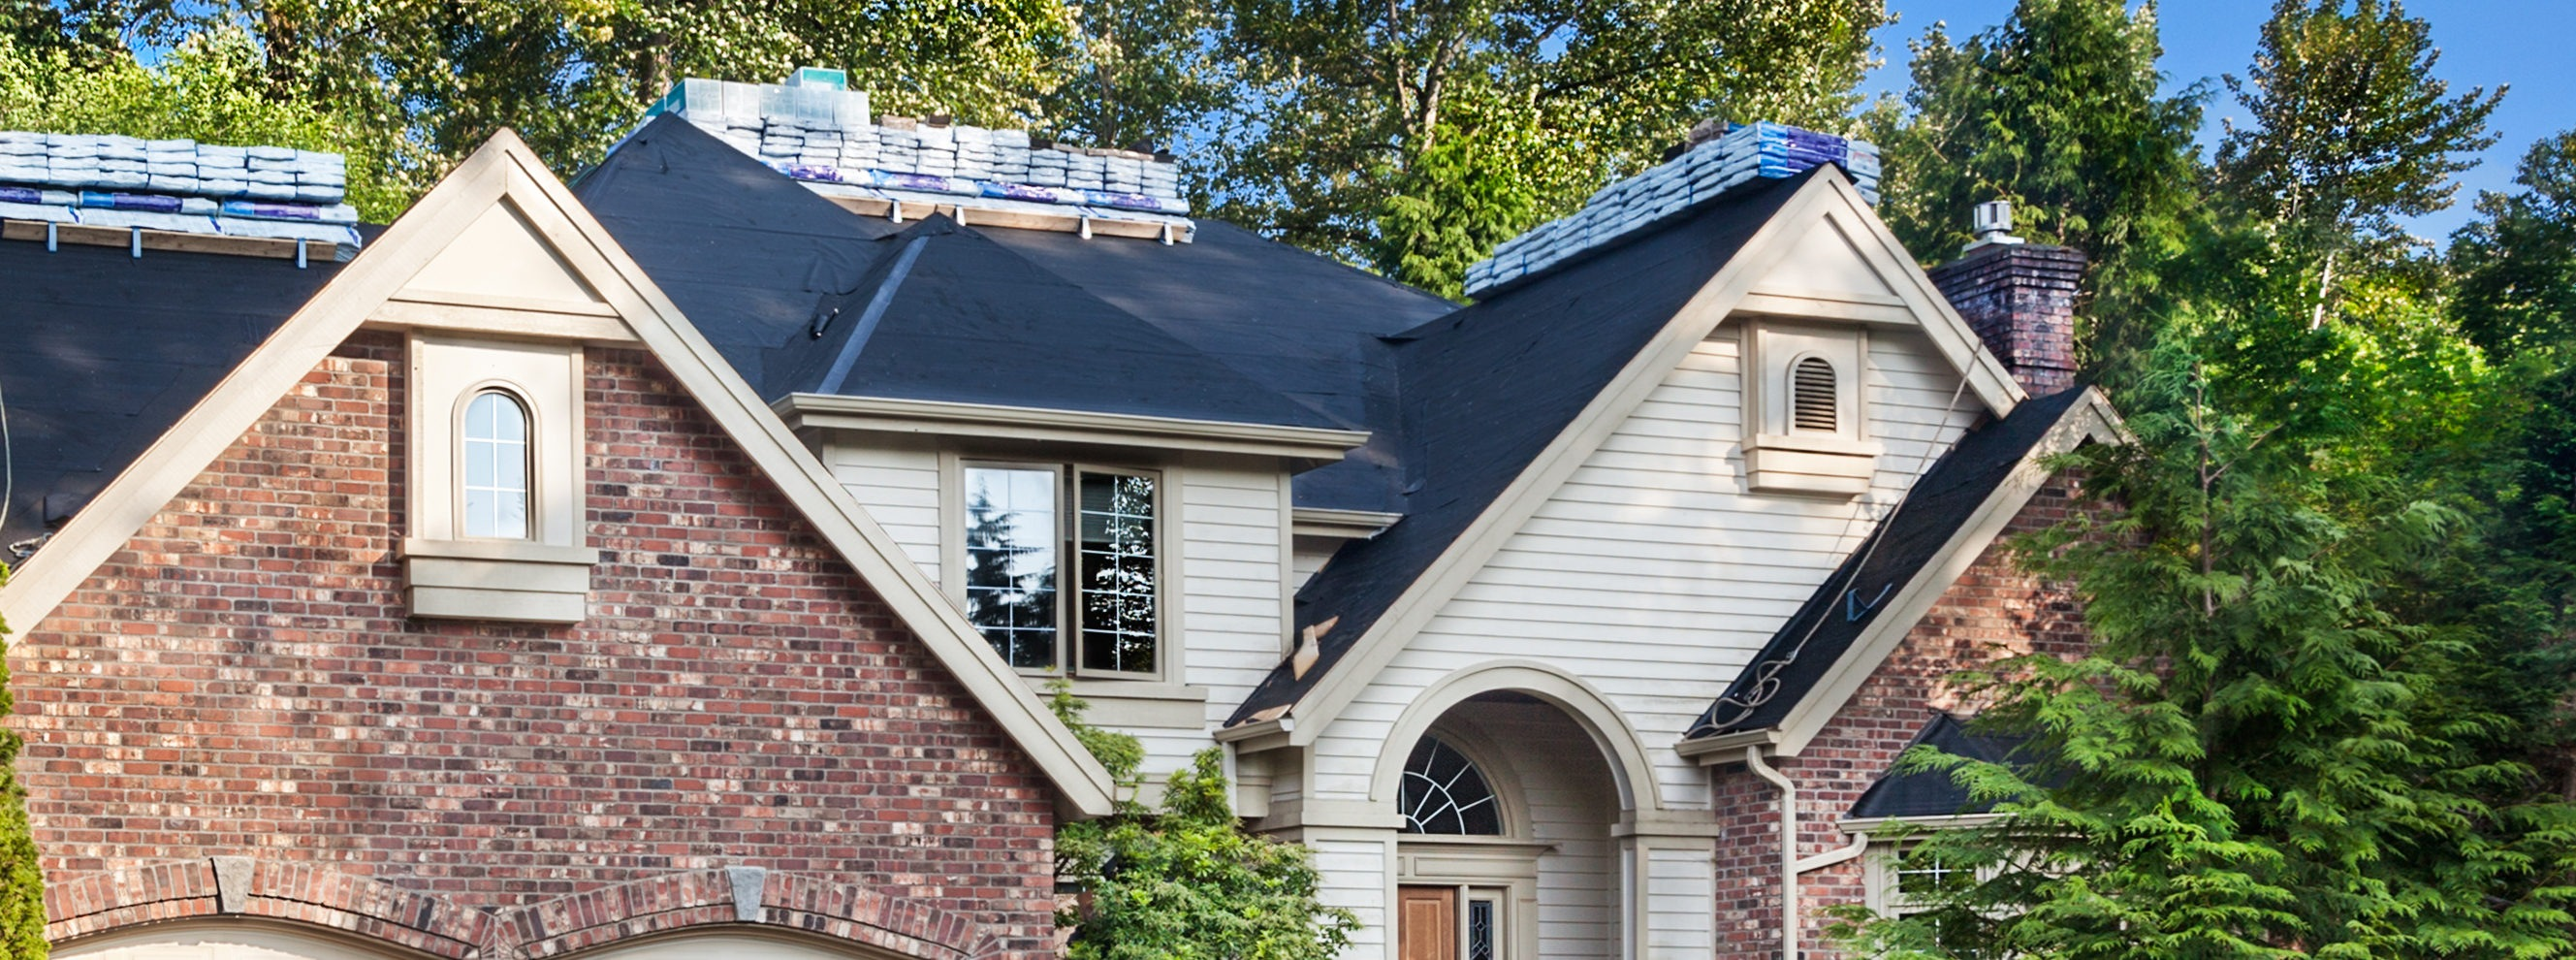 J. King DeShazo Roofing - Richmond Virginia Roofer - Commercial & Residential